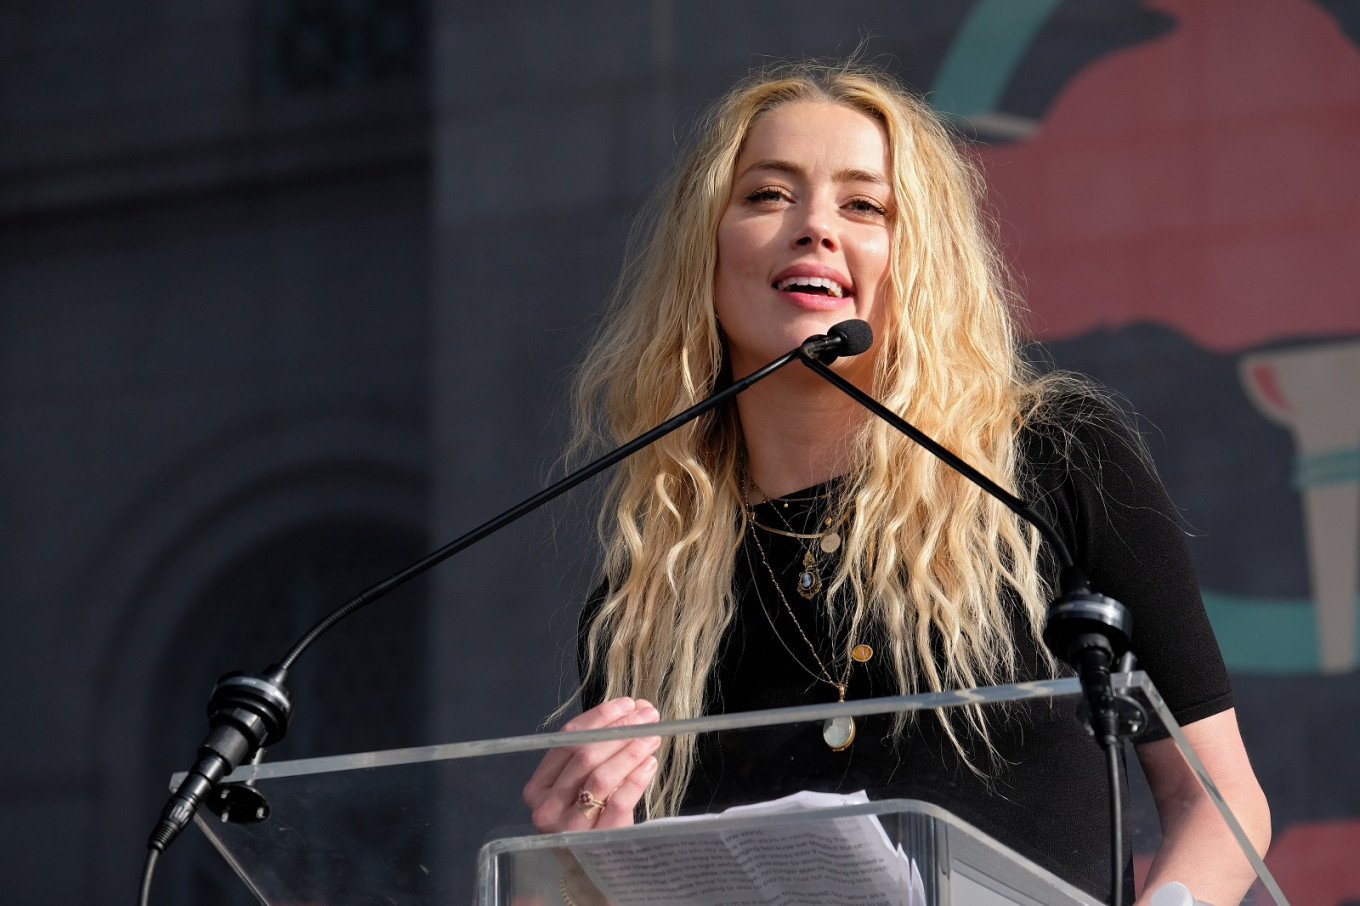 Online petition calling for removal of Amber Heard from ...